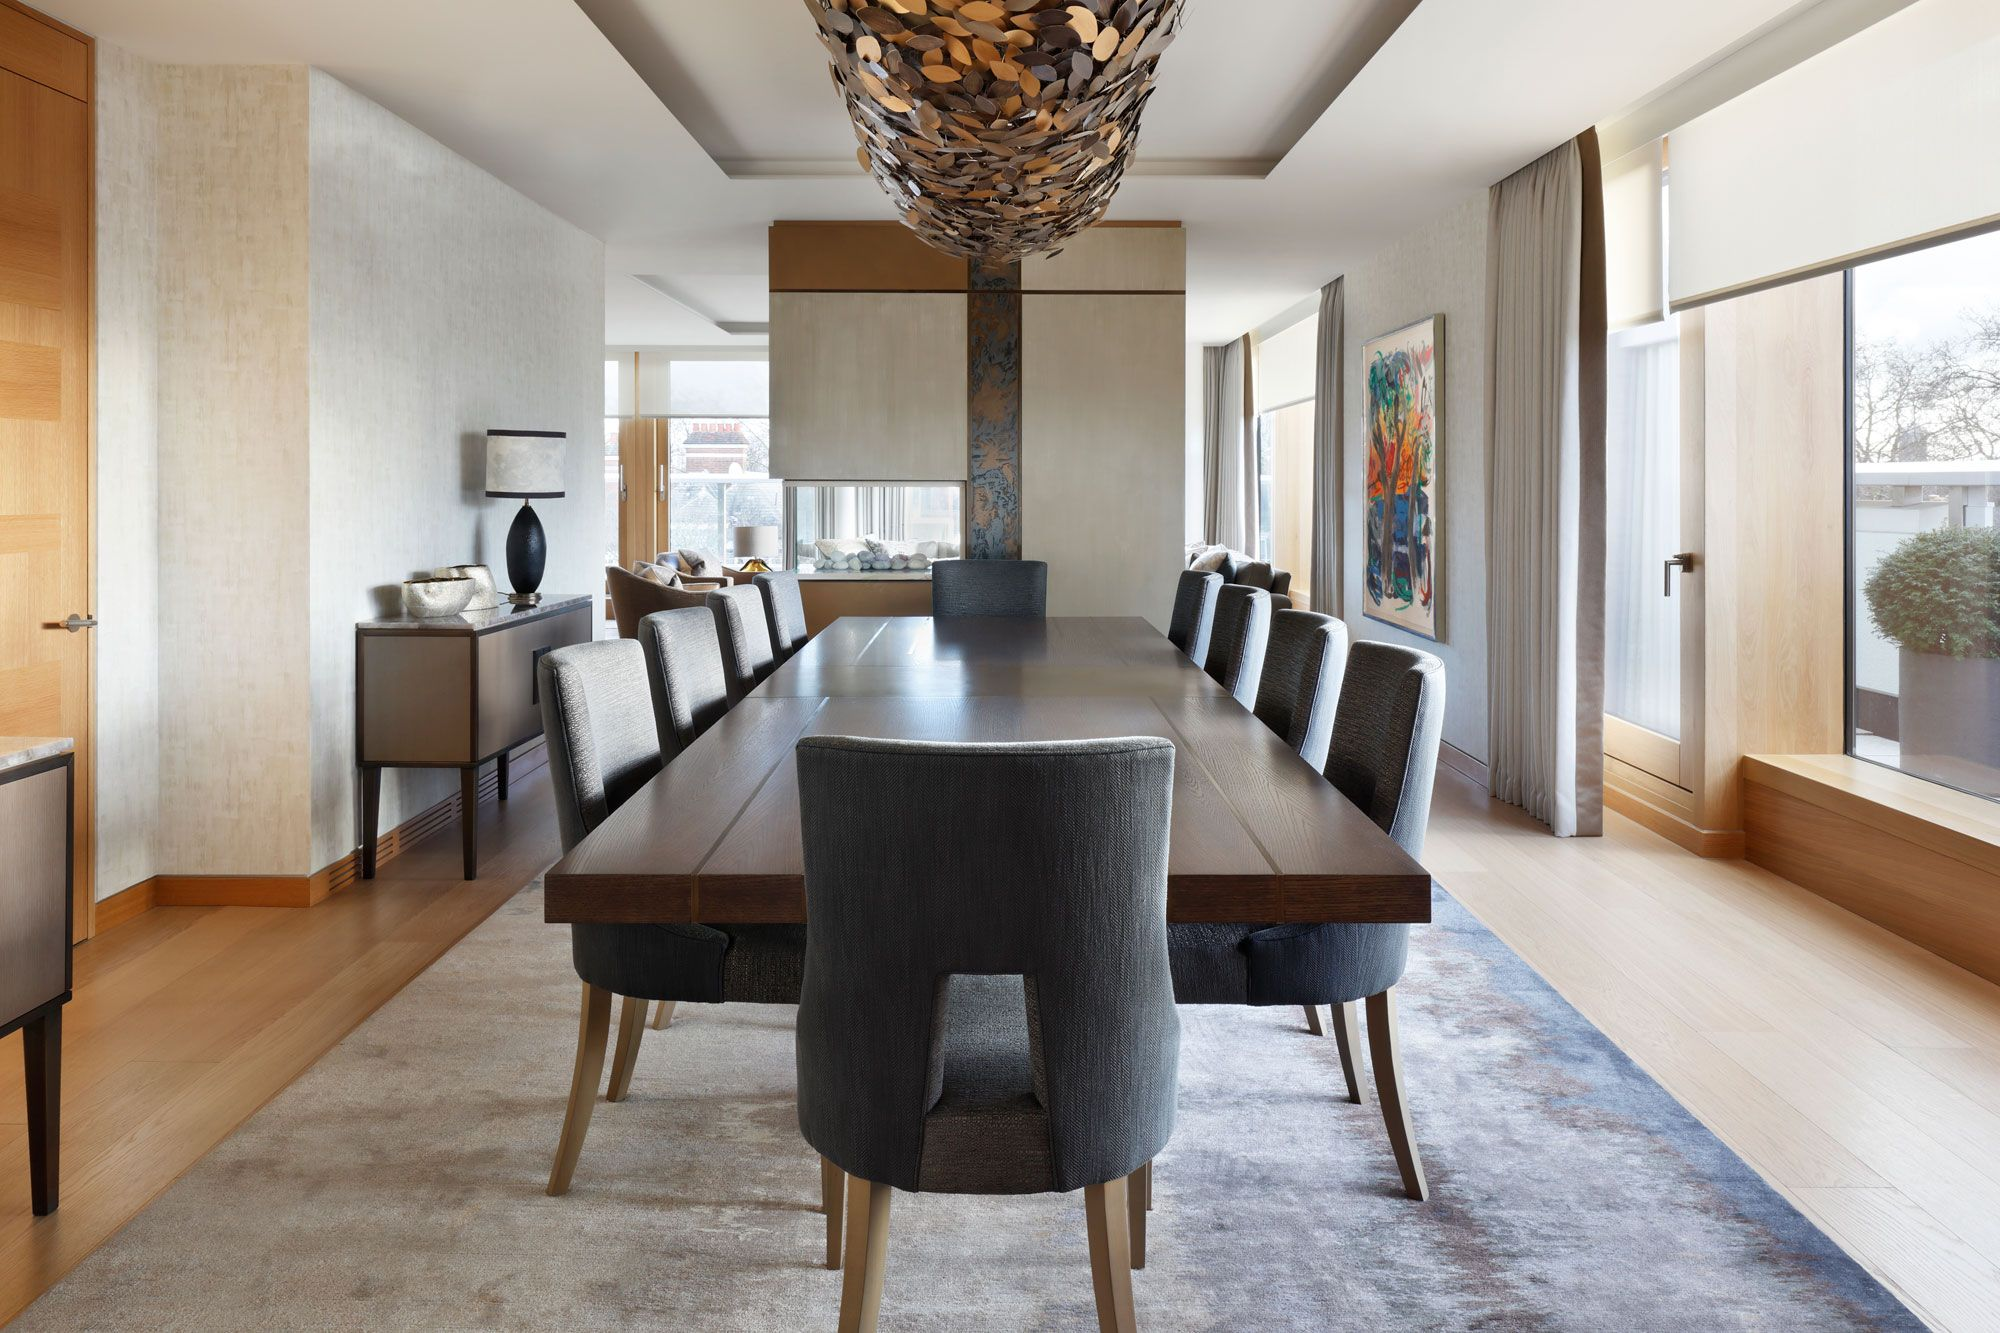 Helen green penthouse kensington dining table design modern dining table luxury dining